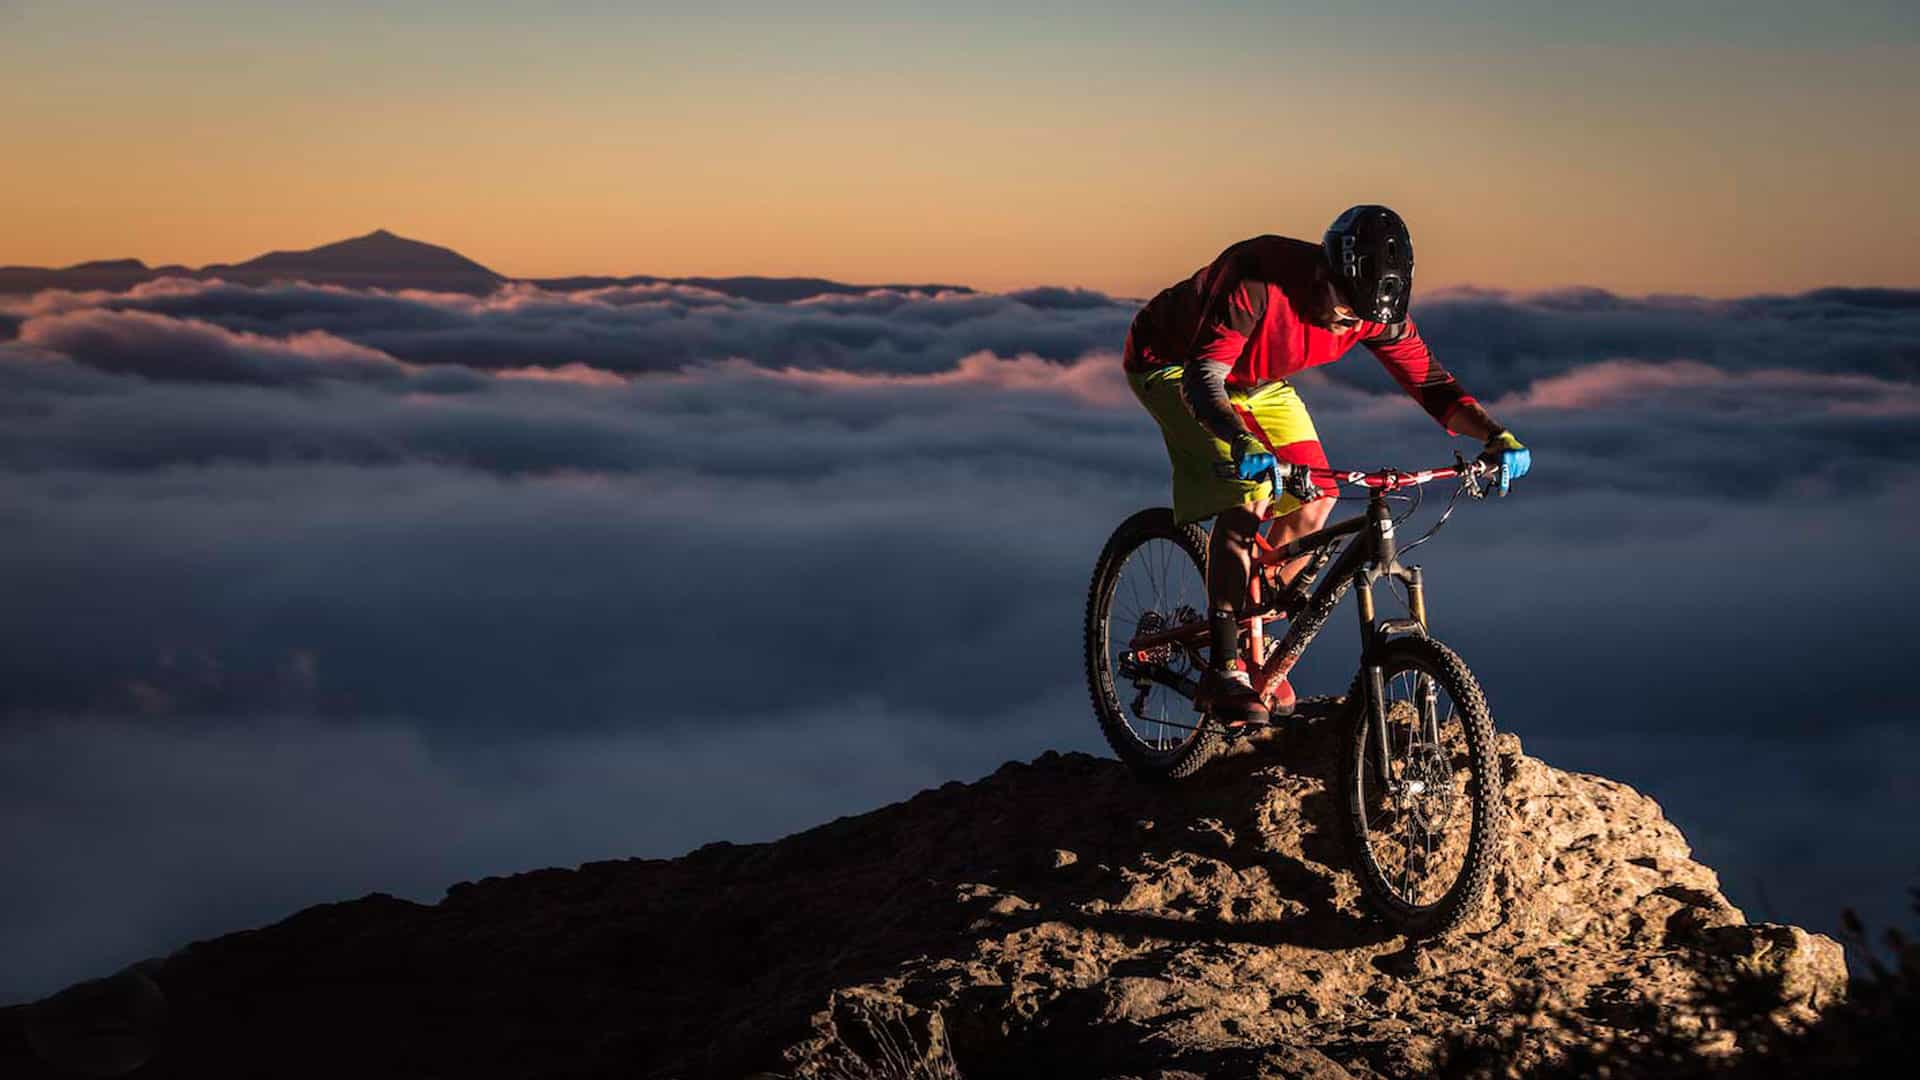 Gran Canaria Mountain Bike - better place in the world